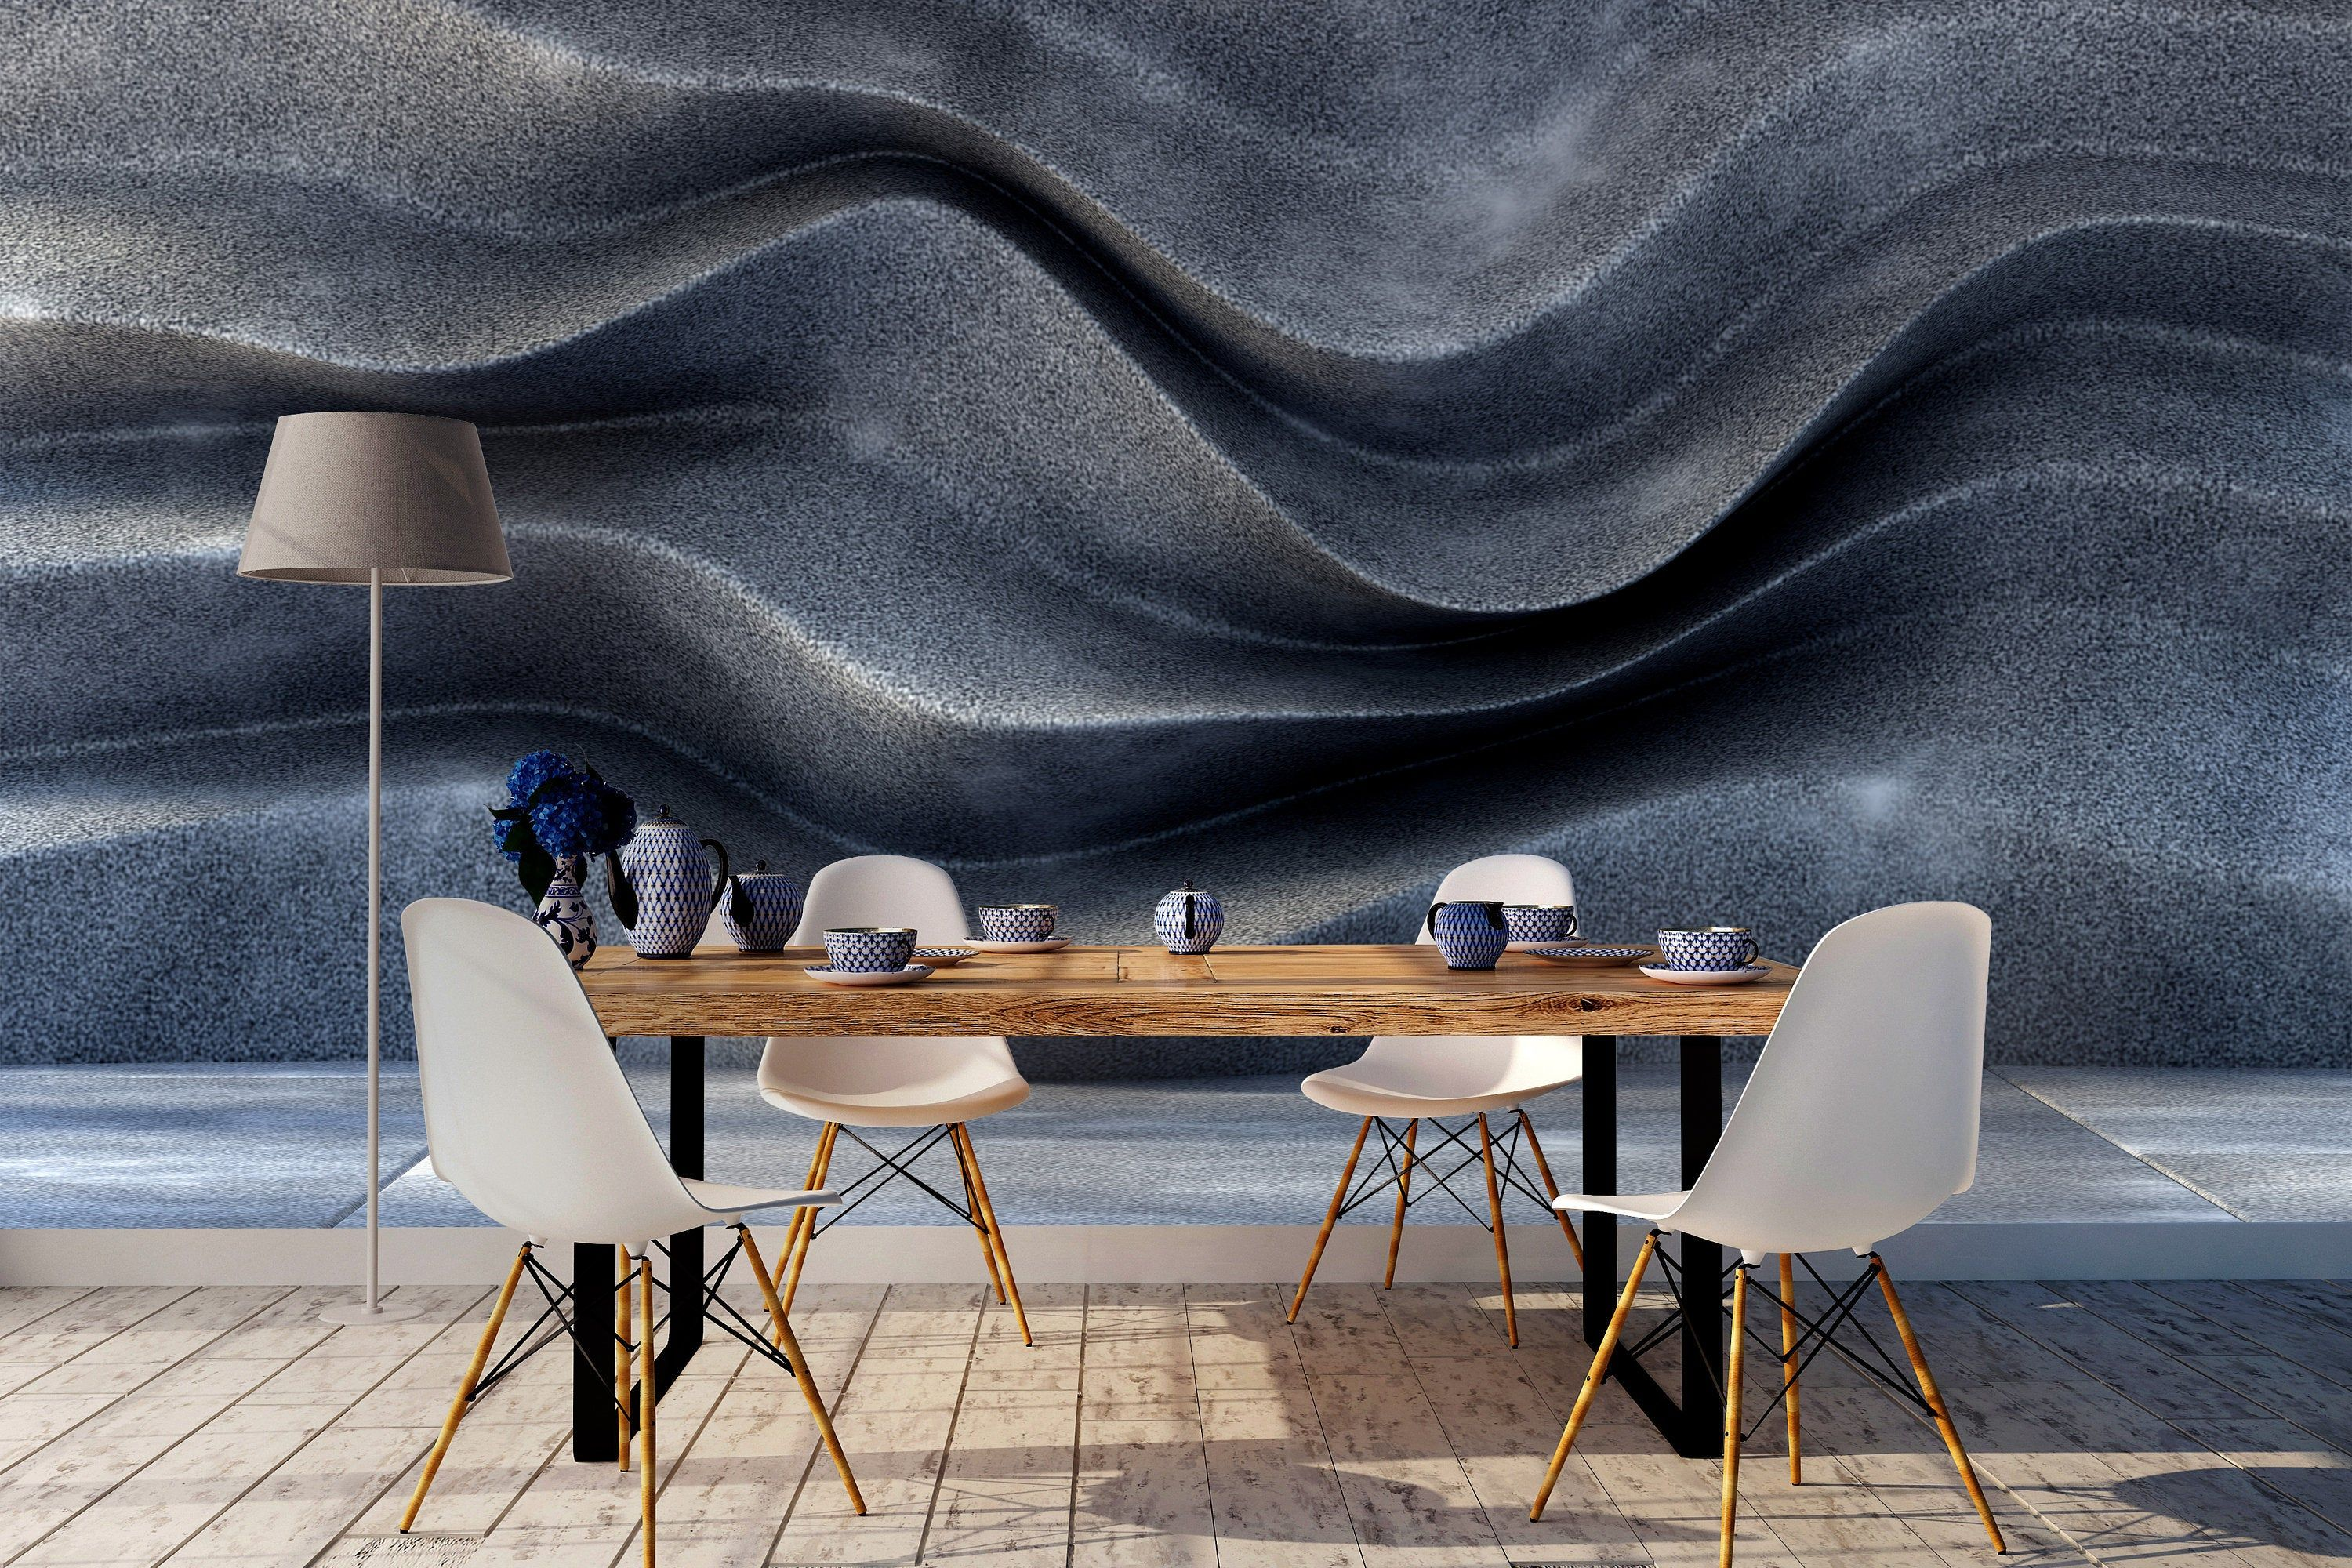 Rock 3d Render Hq Peel And Stick Self Adhesive Wallpaper Removable Wall Mural Living Room Bedroom En Removable Wall Murals Kids Room Murals Living Room Bedroom